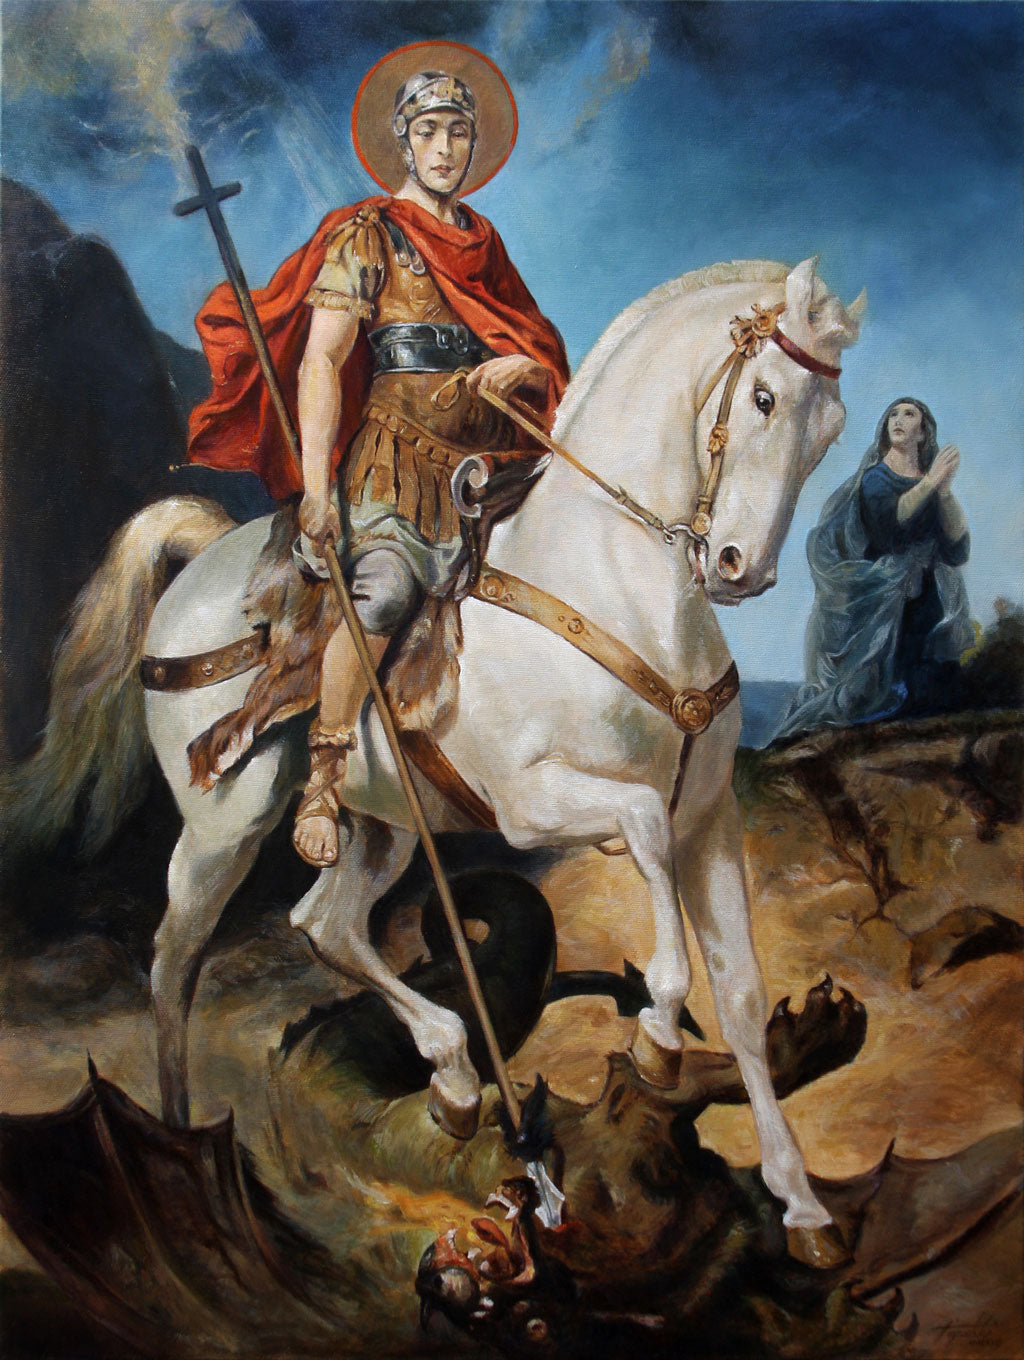 Saint George and the Dragon, Darko Topalski